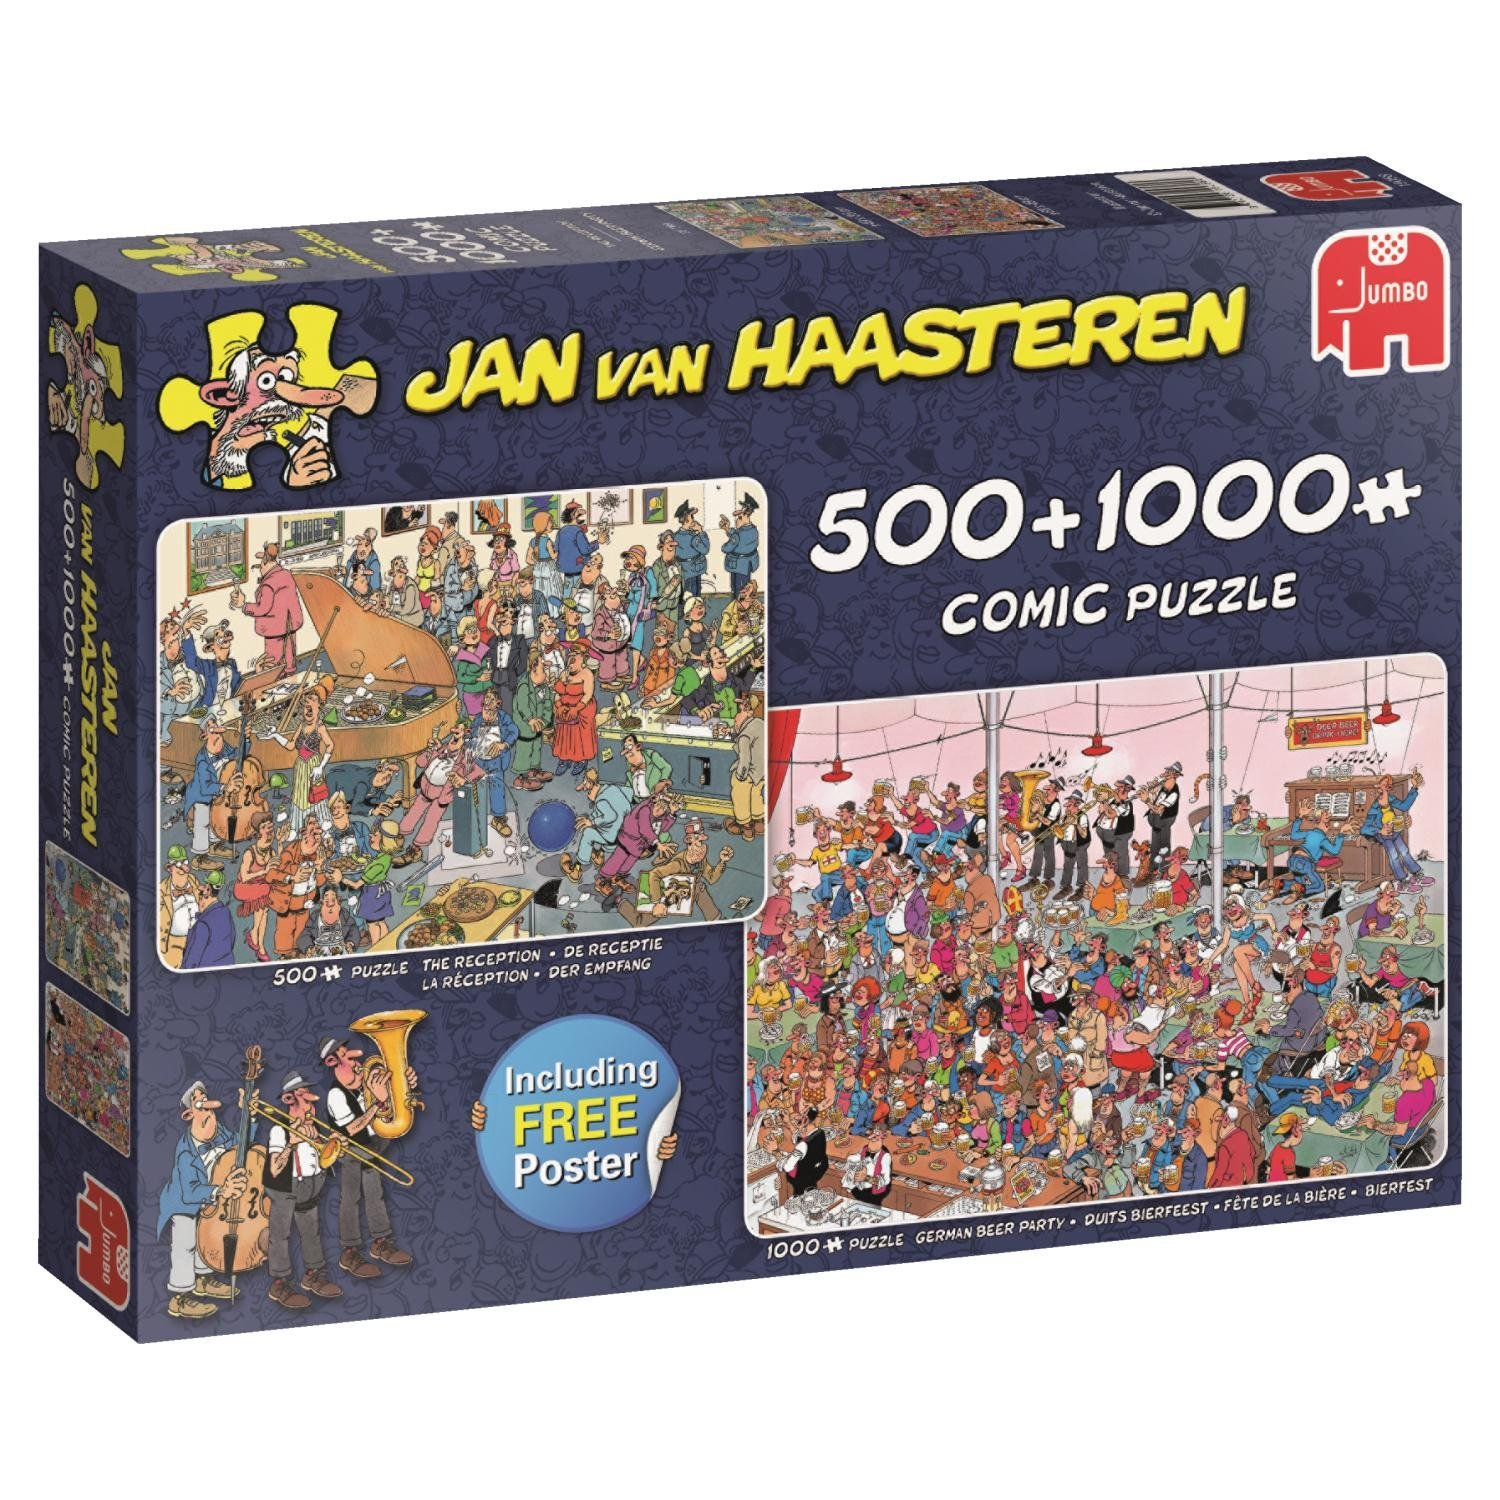 Jan van Haasteren Let's Party! 500 Piece and 1000 Piece Jigsaw Puzzles